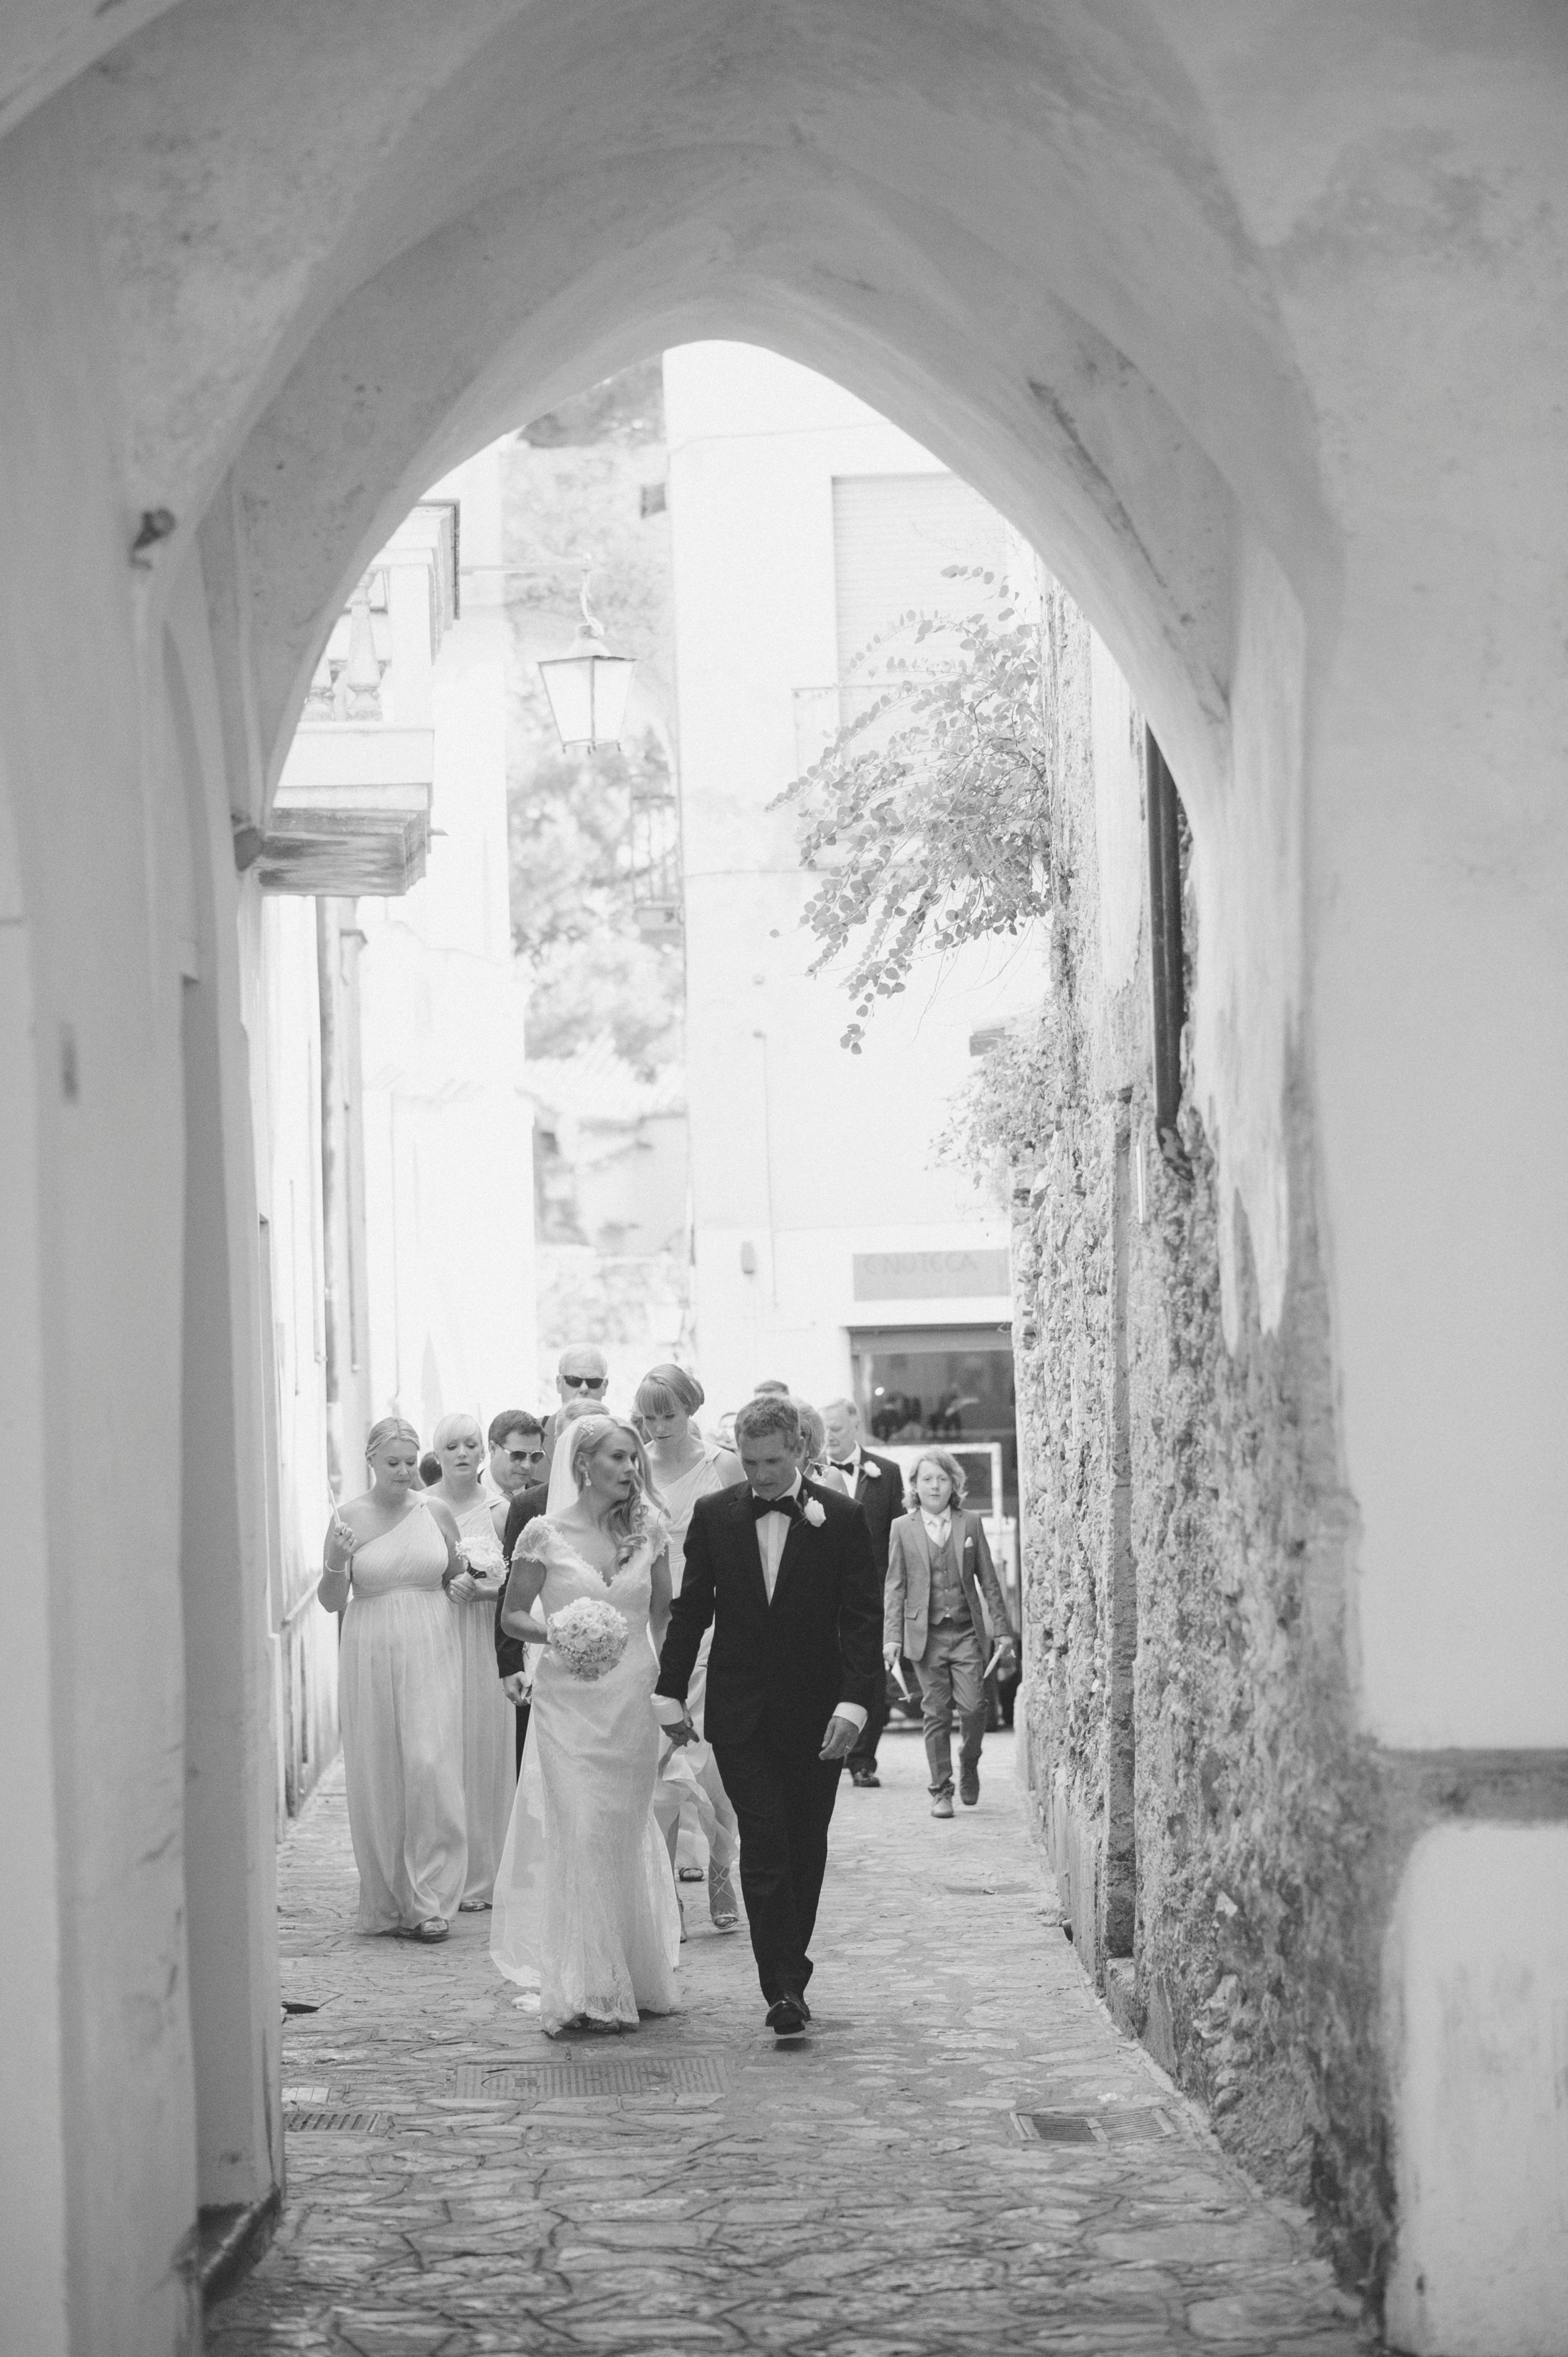 wedding in ravello bride and groom walking with other wedding guests